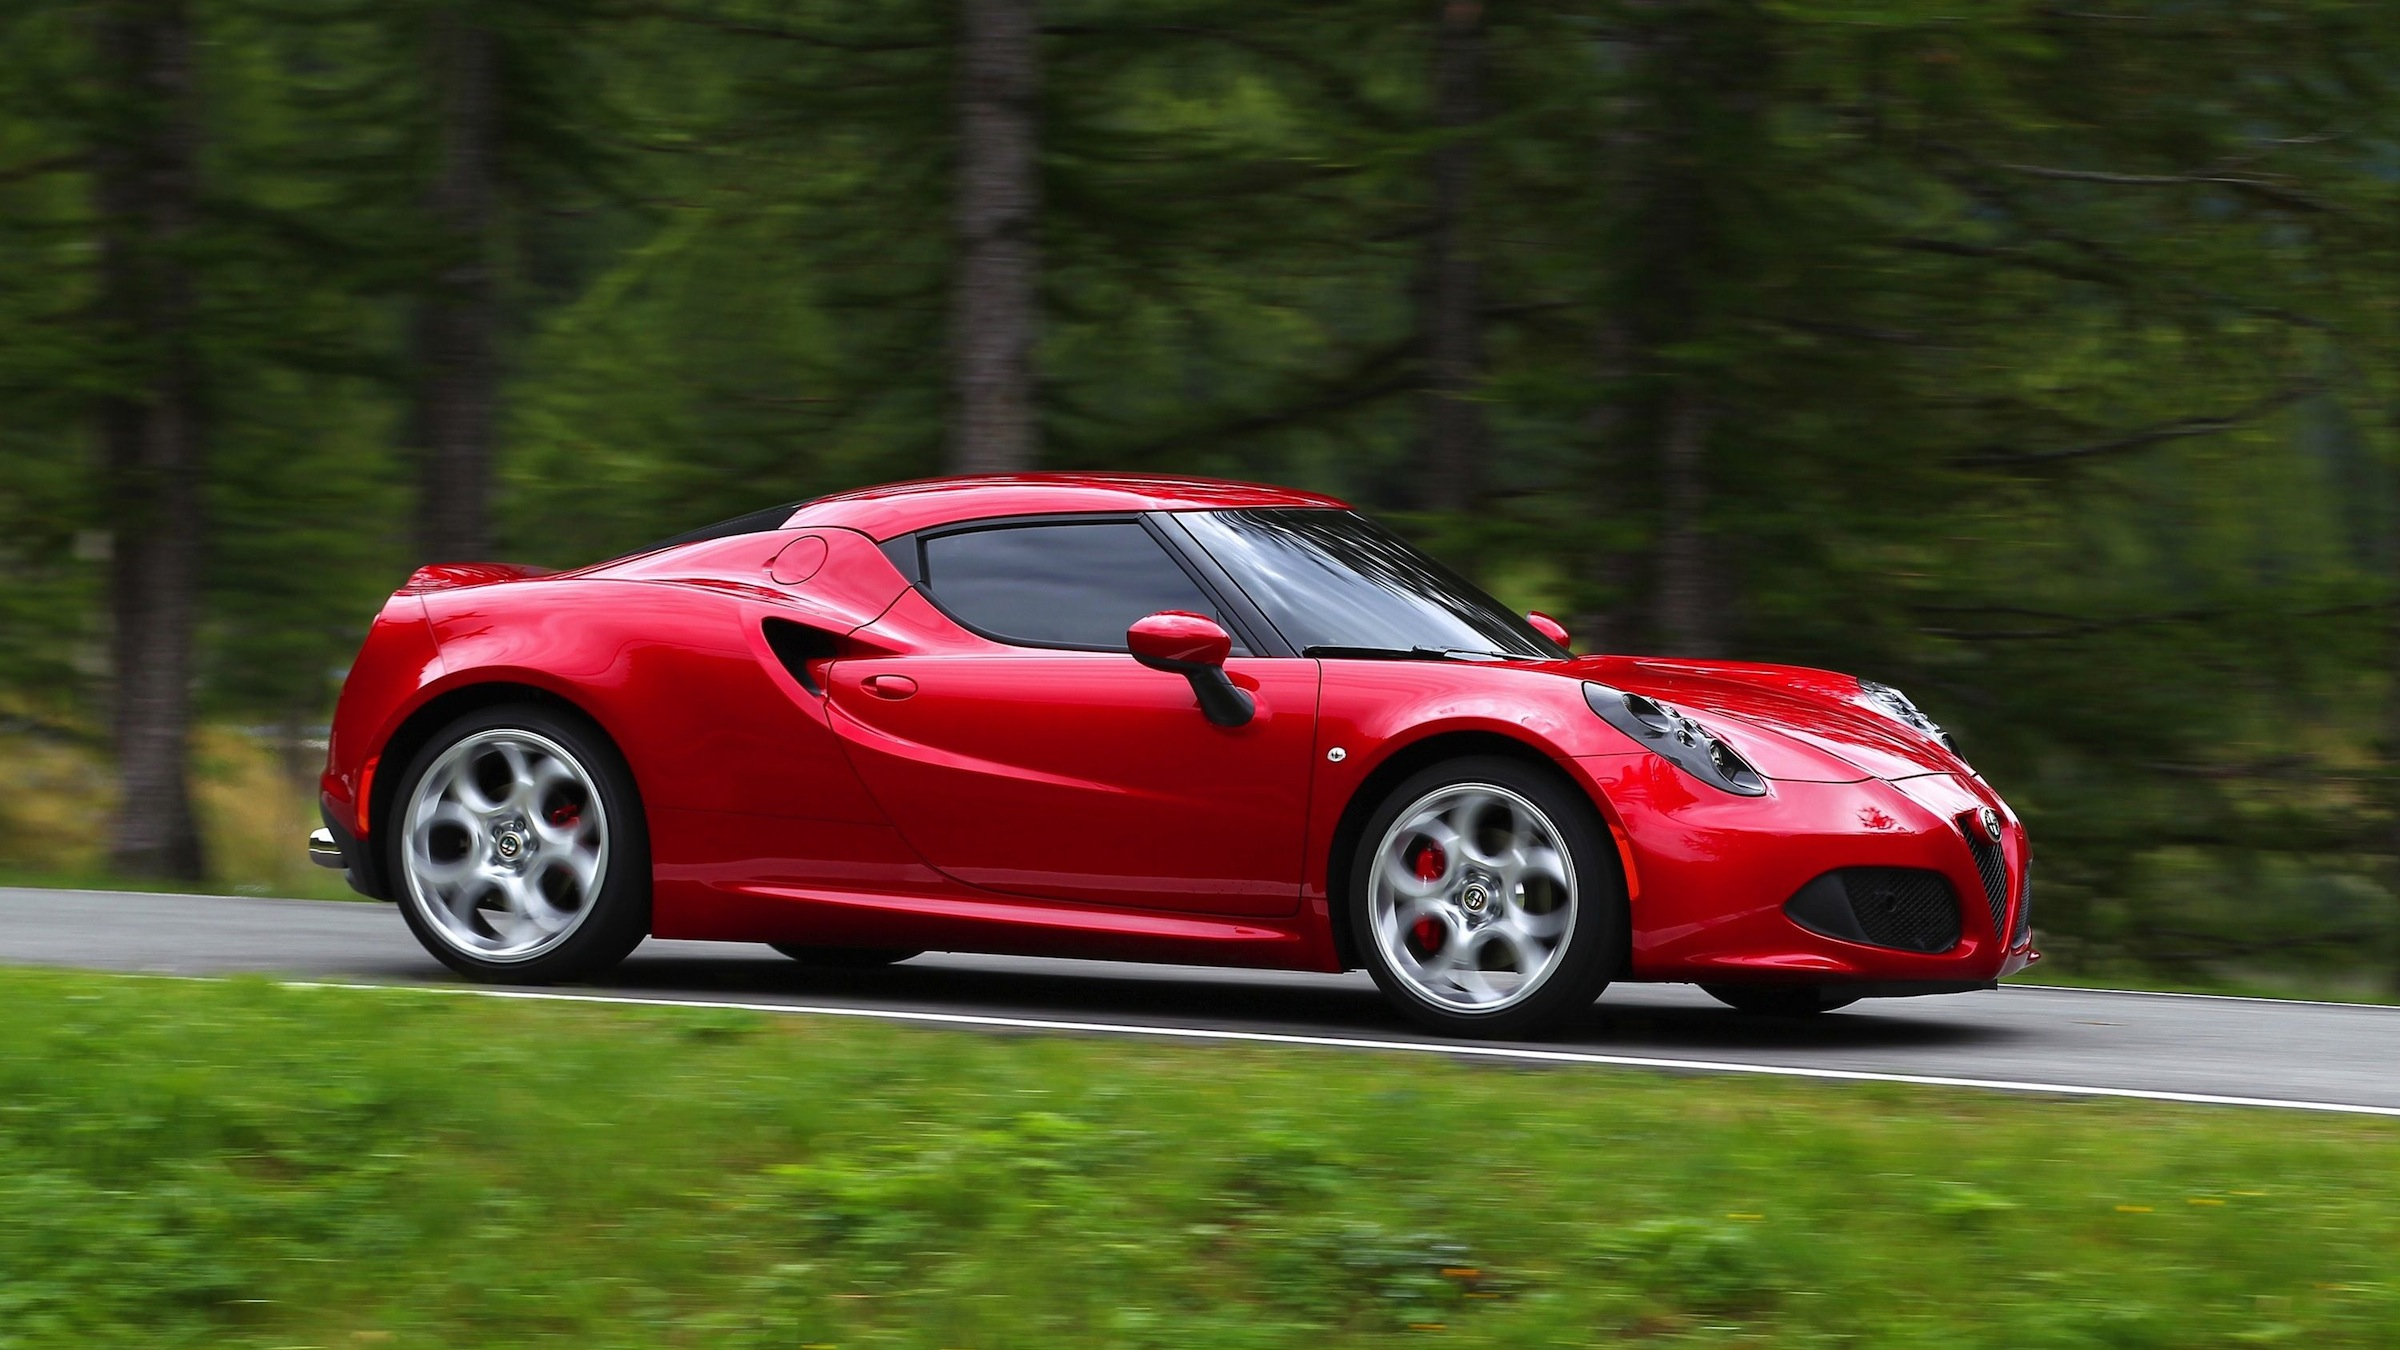 Fiat S New Turbo Ed Alfa Romeo 4c Sports Car Is Leaving Chevy And Porsche An Opening